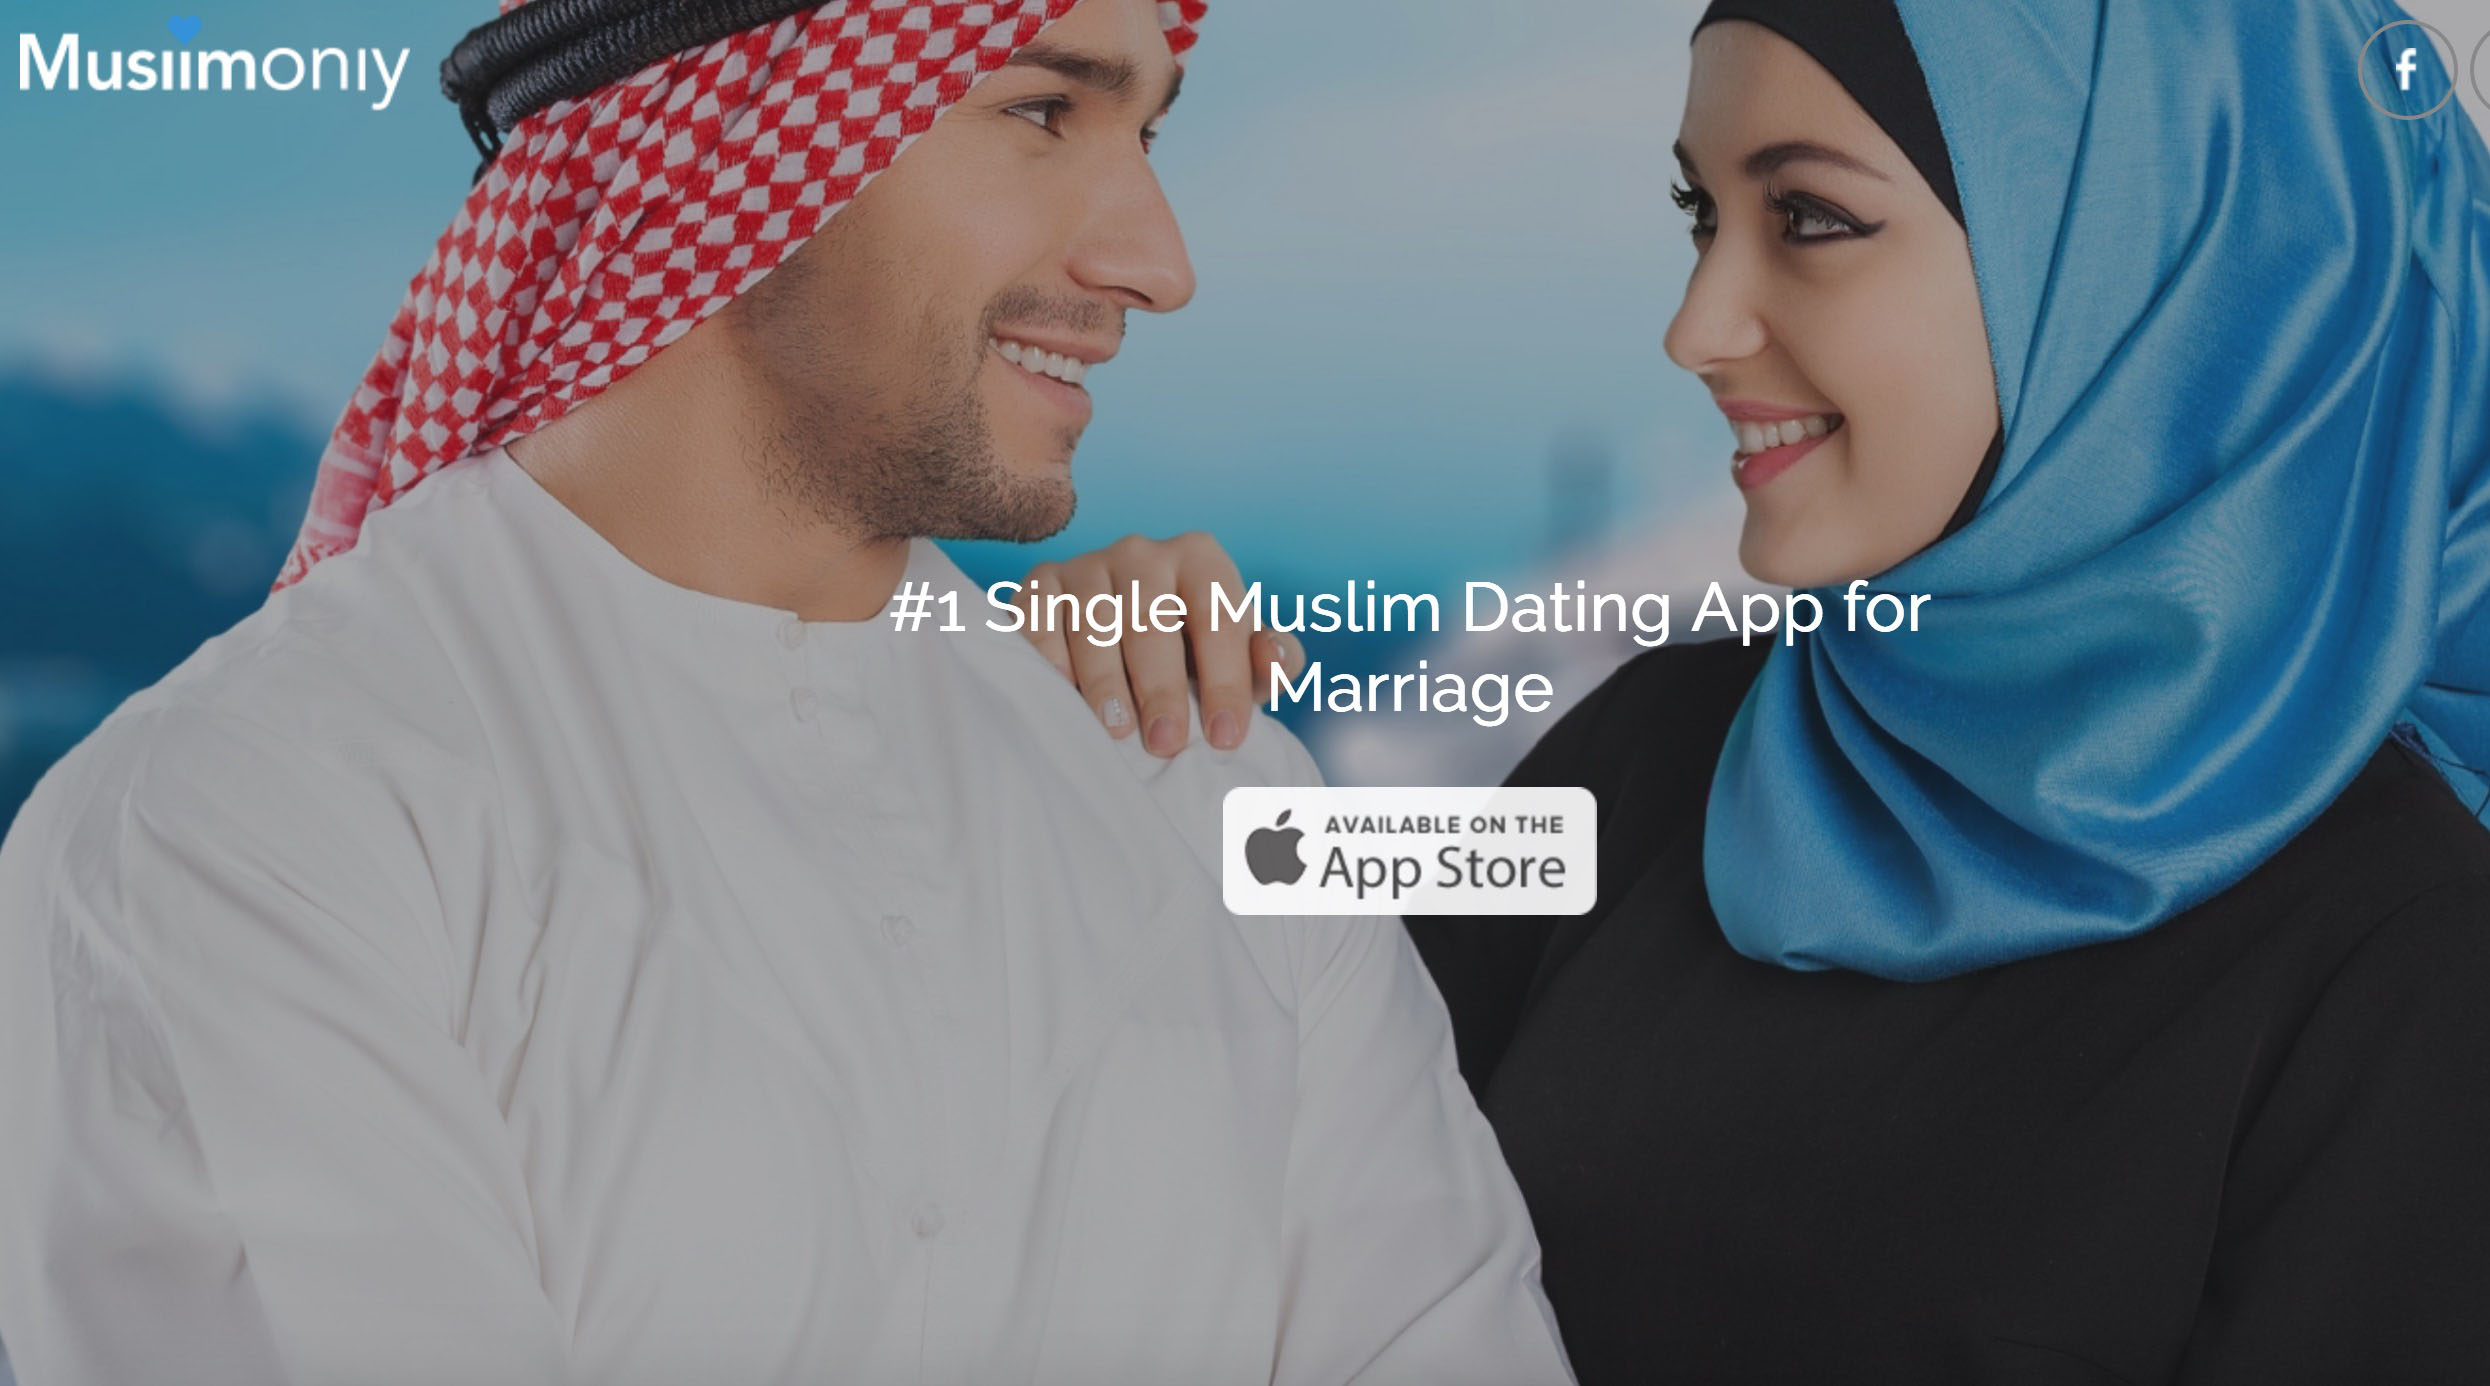 concho muslim personals Iranian women & men meet at this persian dating site & iranian chat room create a free account to meet iranian singles.